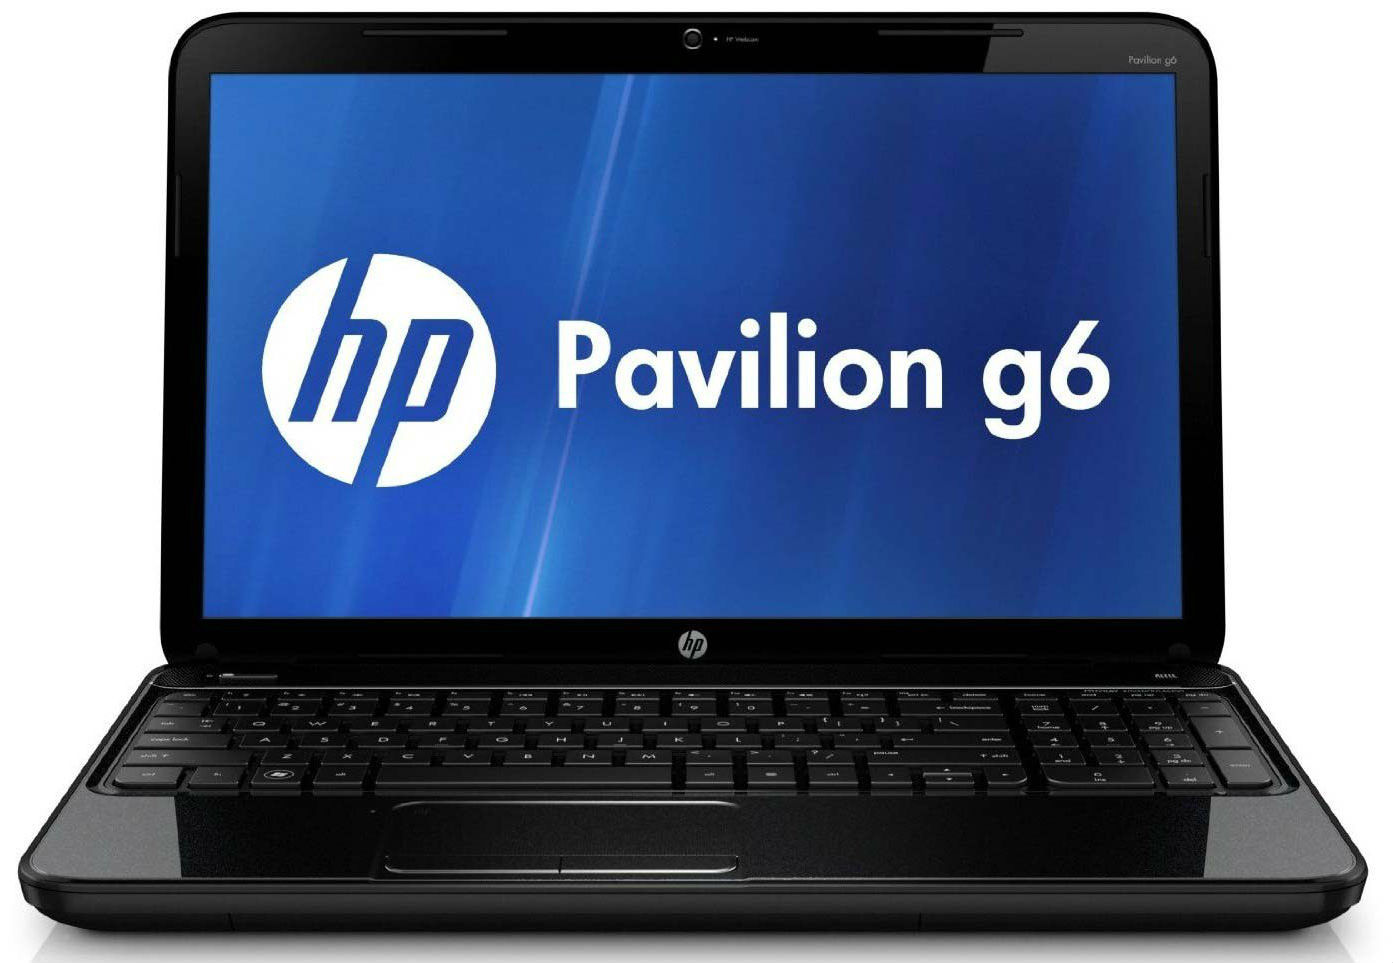 hp pavilion g6 2202tx core i5 3rd gen 4 gb 500 gb. Black Bedroom Furniture Sets. Home Design Ideas